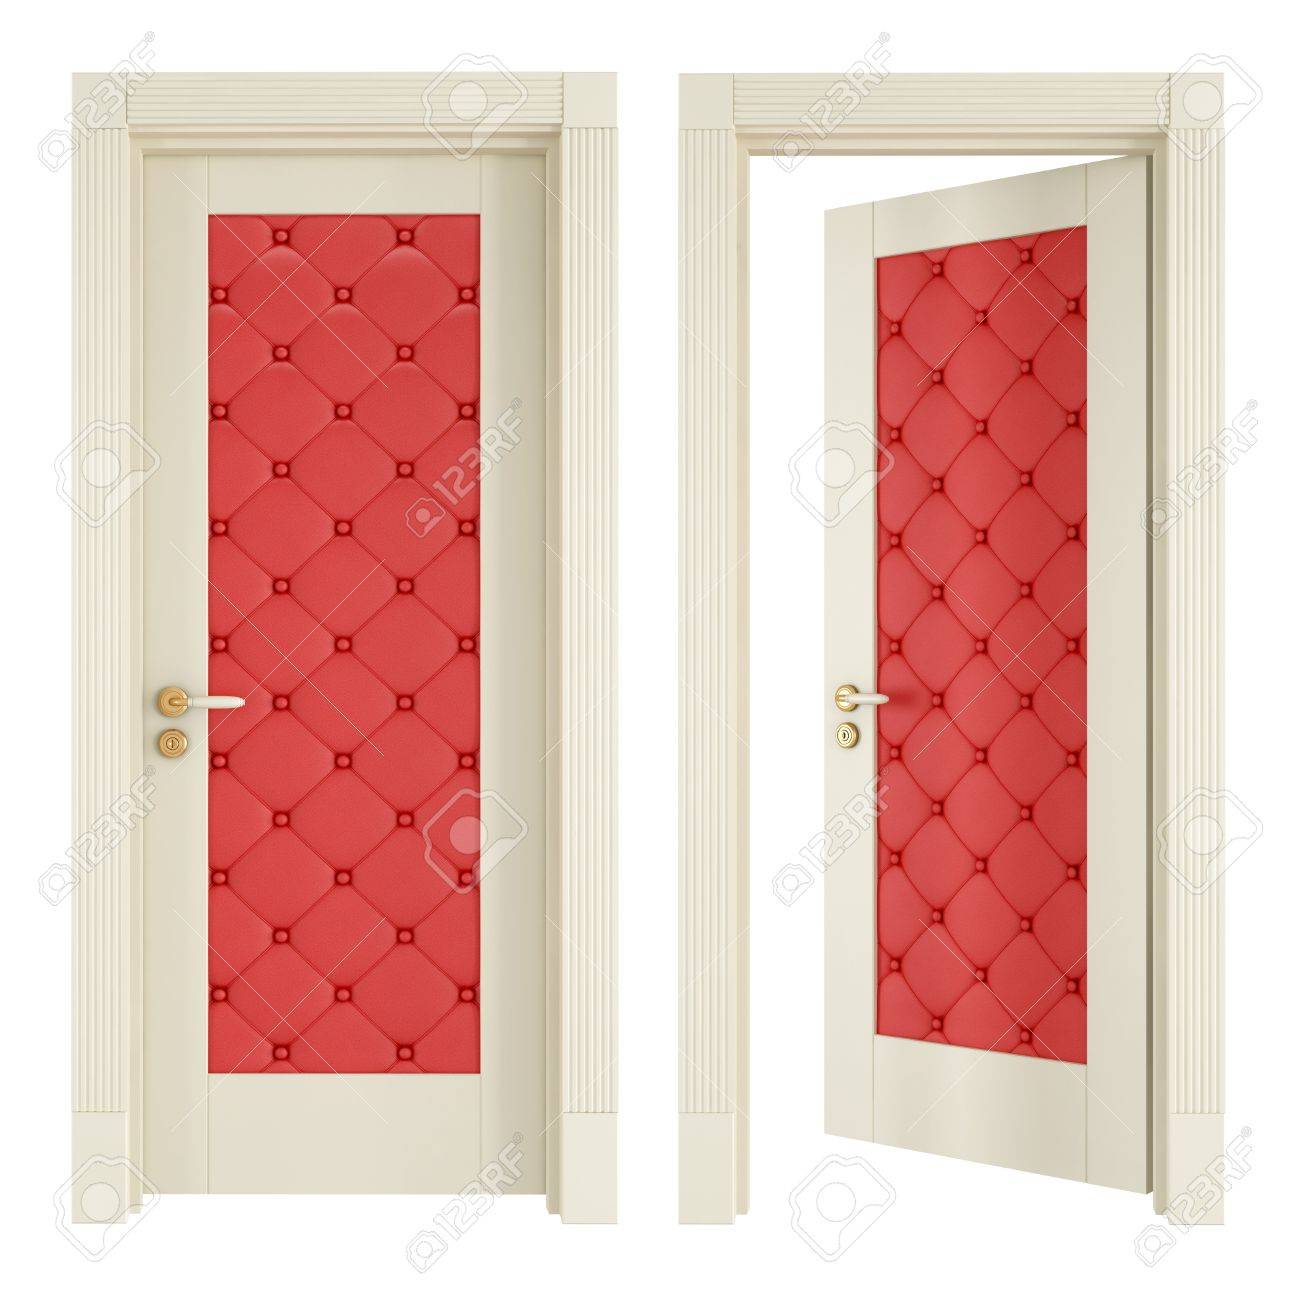 Open And Closed Classic Doors With Red Upholstery Isolated On White    Rendering Stock Photo